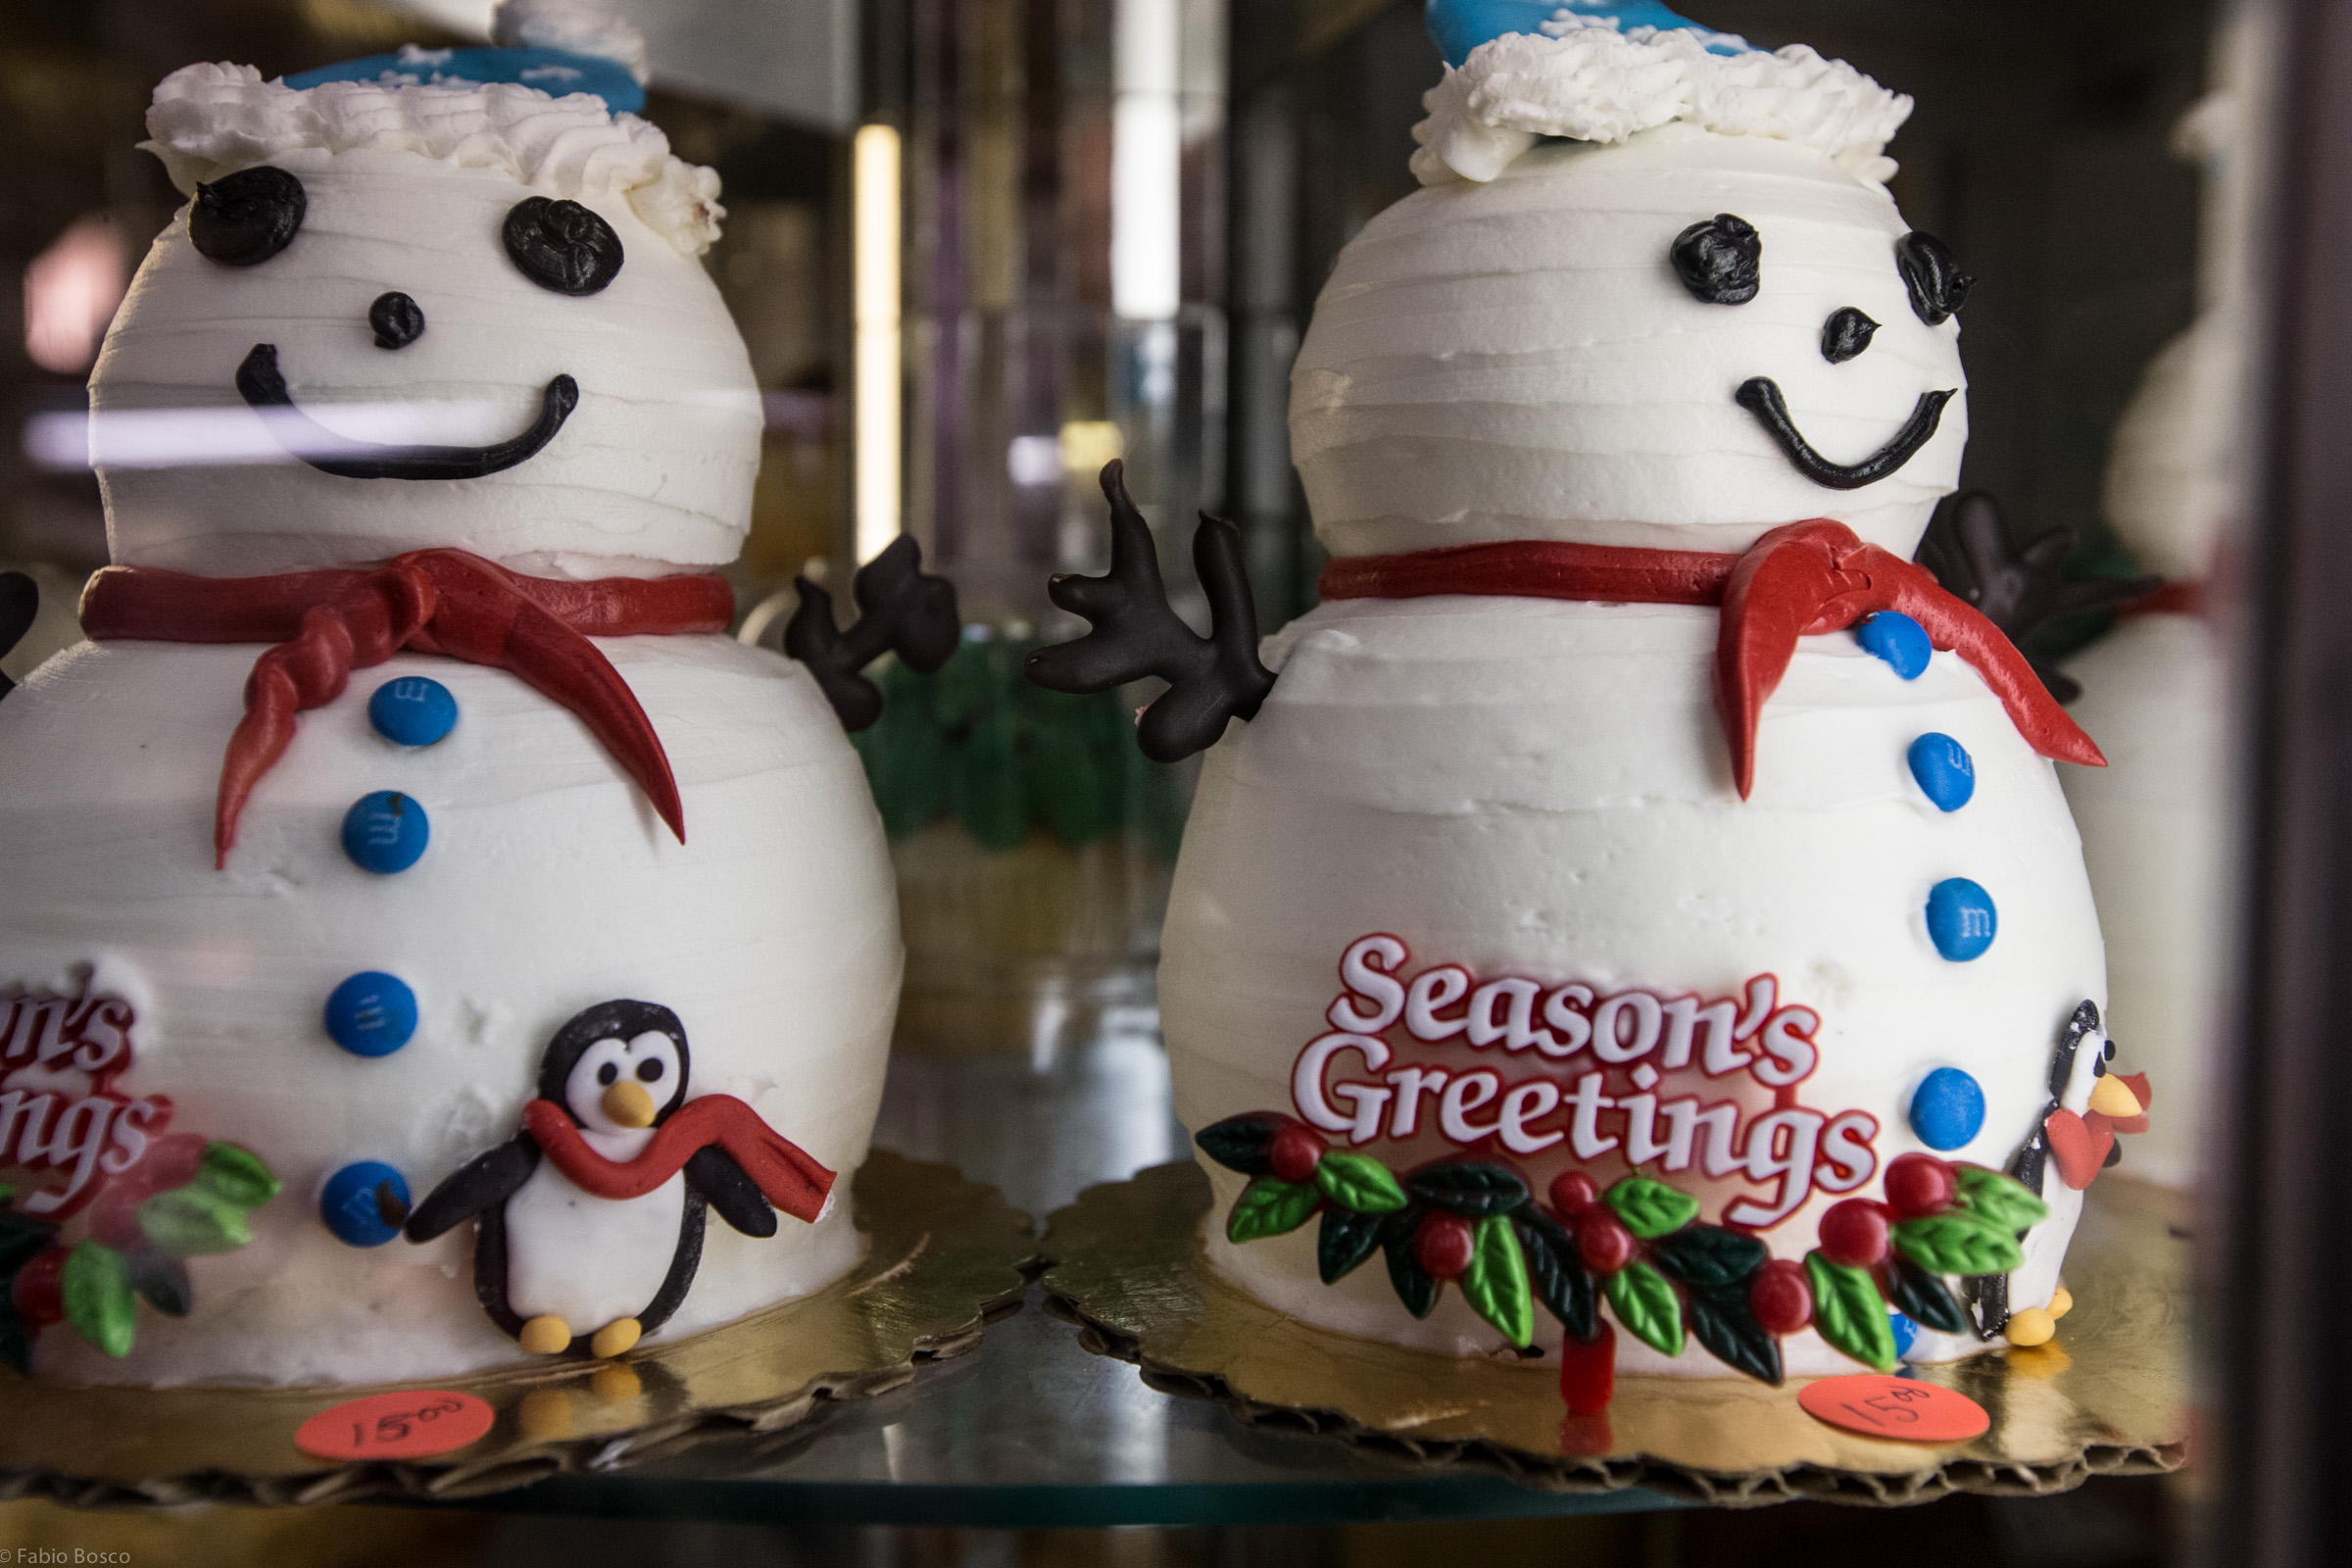 What's better than Snowman cake?